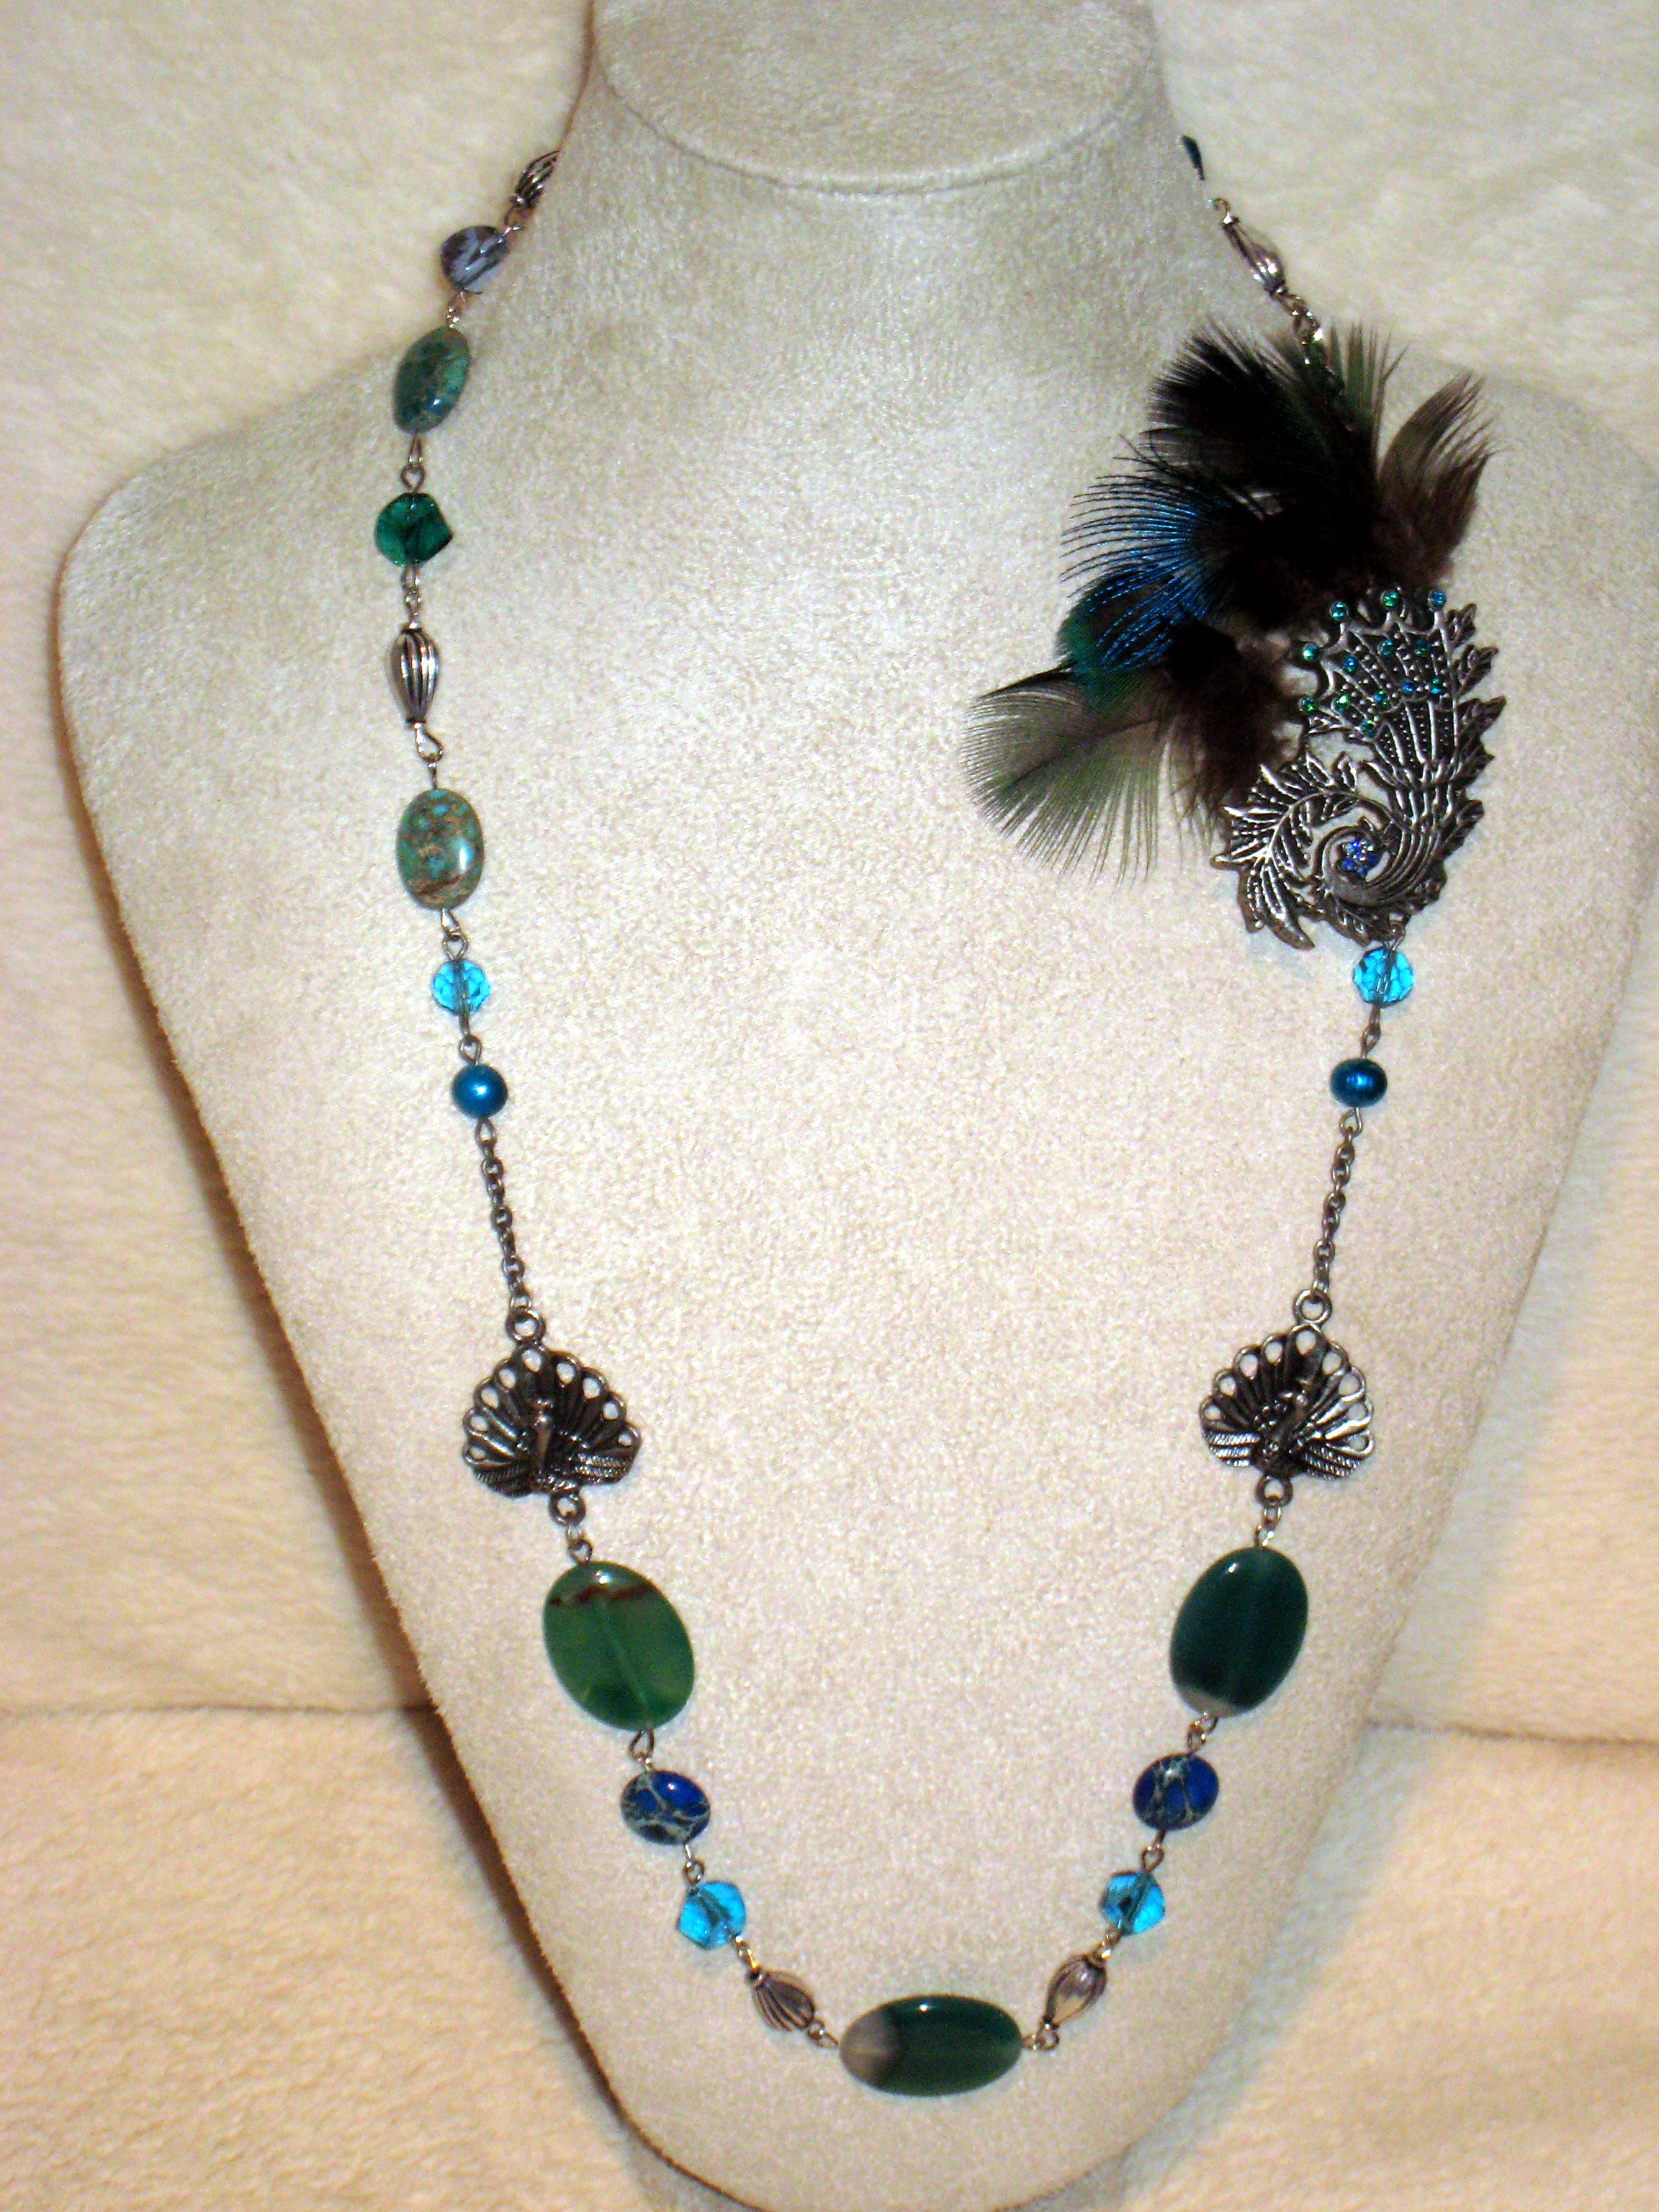 retro feather p boho necklace bohemian vintage charm quick view peacock